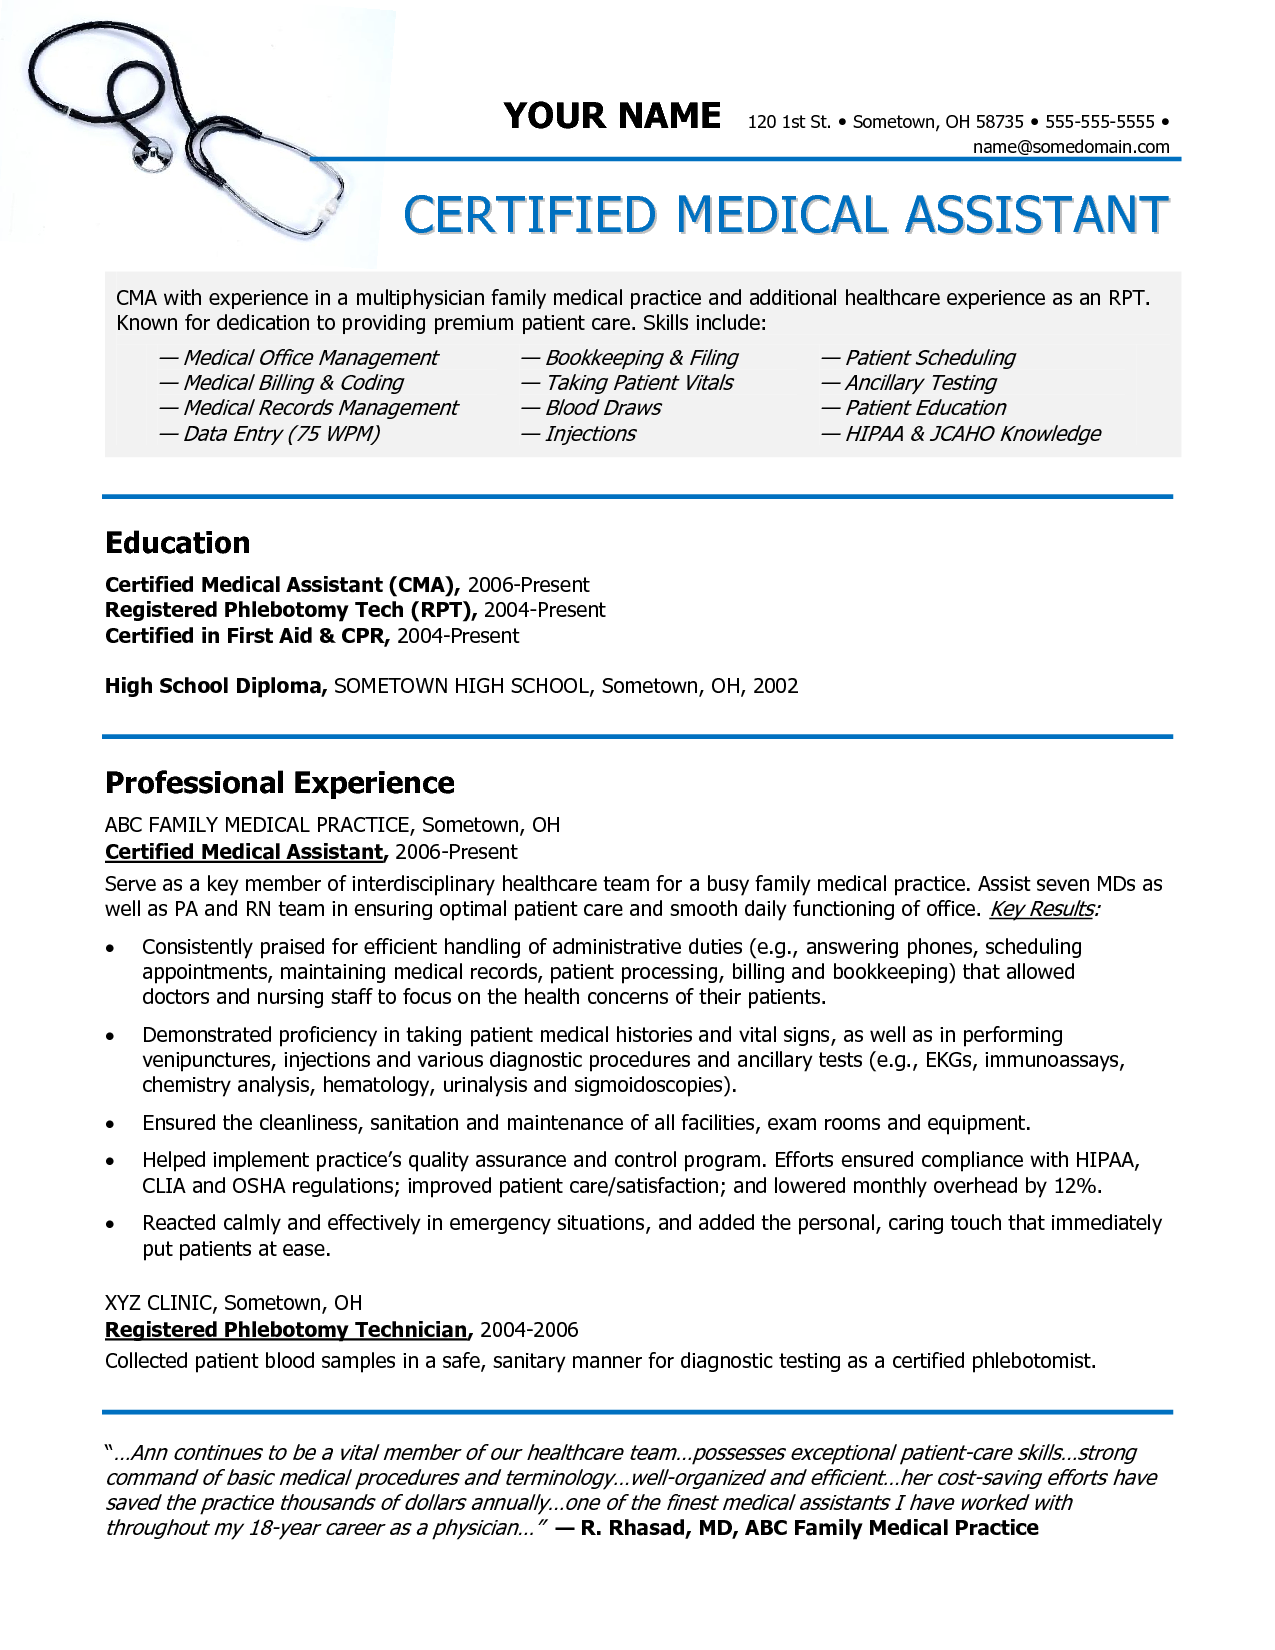 Resume Examples Medical Assistant | 1-Resume Examples | Pinterest ...